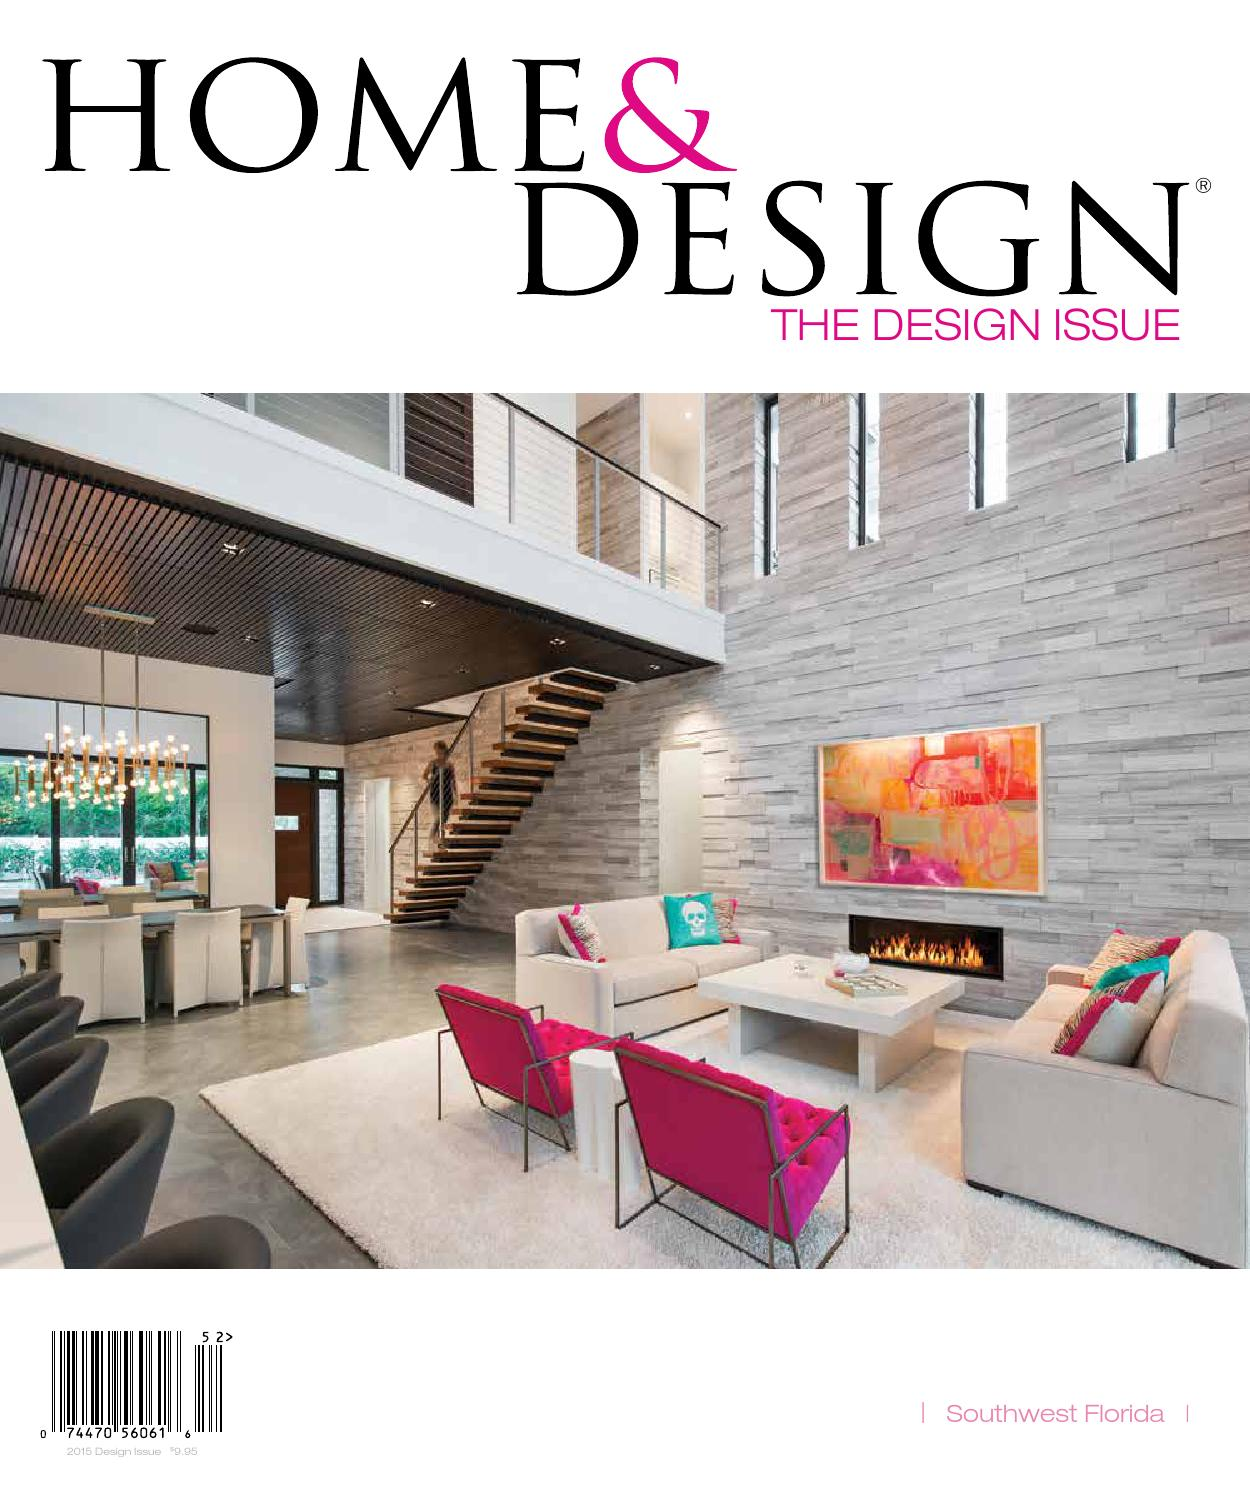 Home Design Magazine style home design magazine Home Design Magazine Design Issue 2015 Southwest Florida Edition By Anthony Spano Issuu